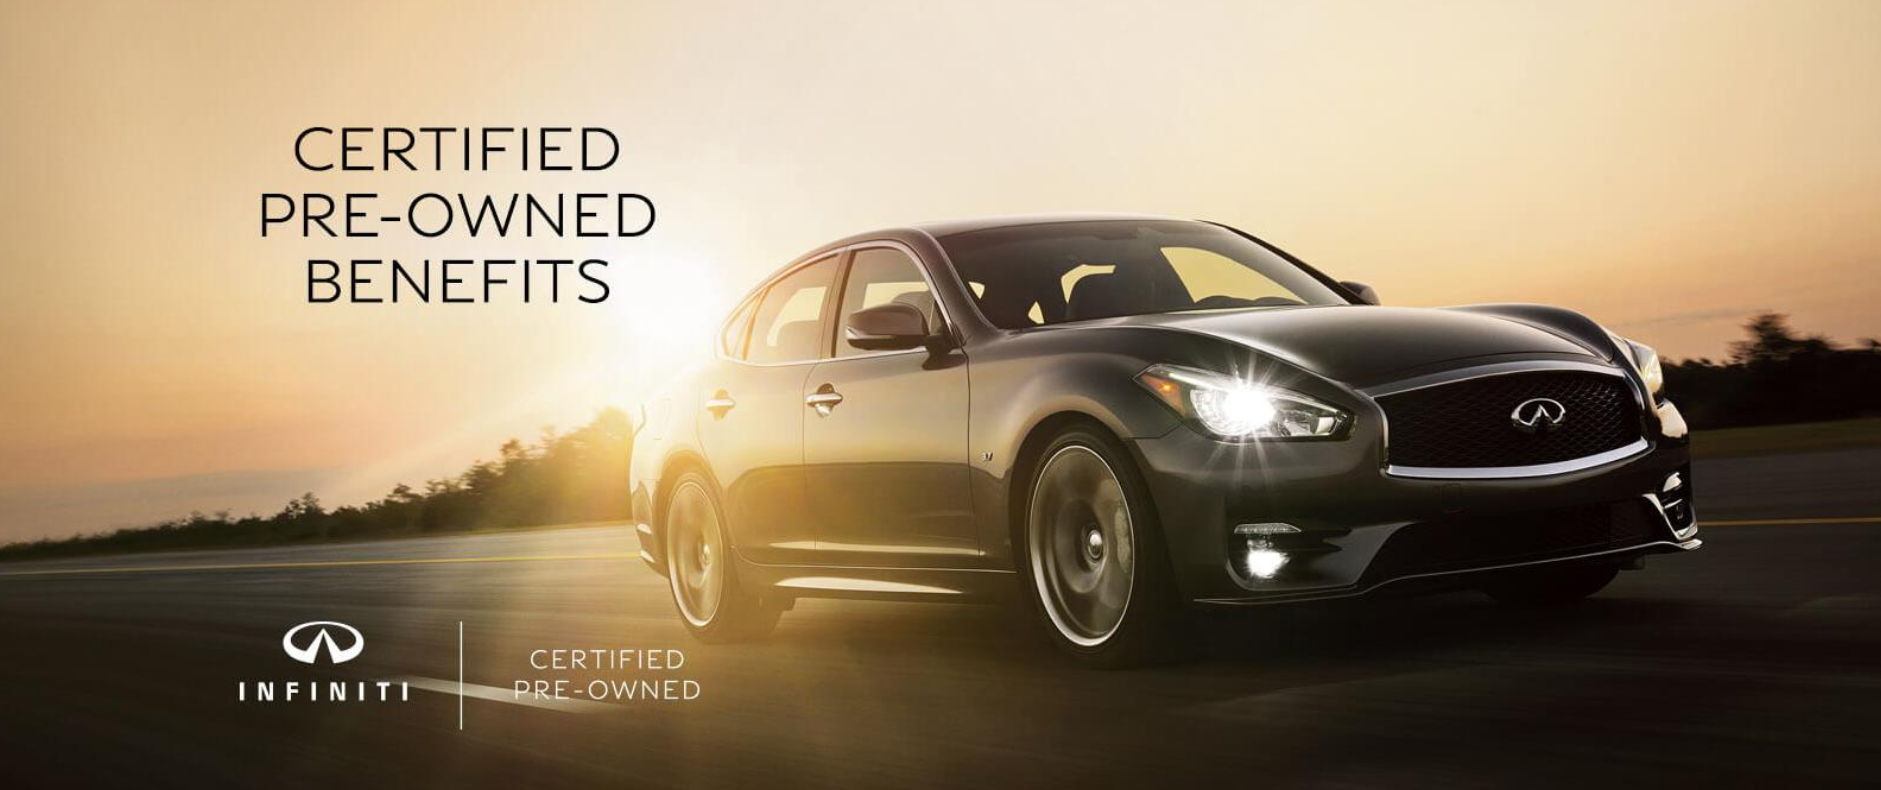 INFINITI Certified Pre-Owned Benefits